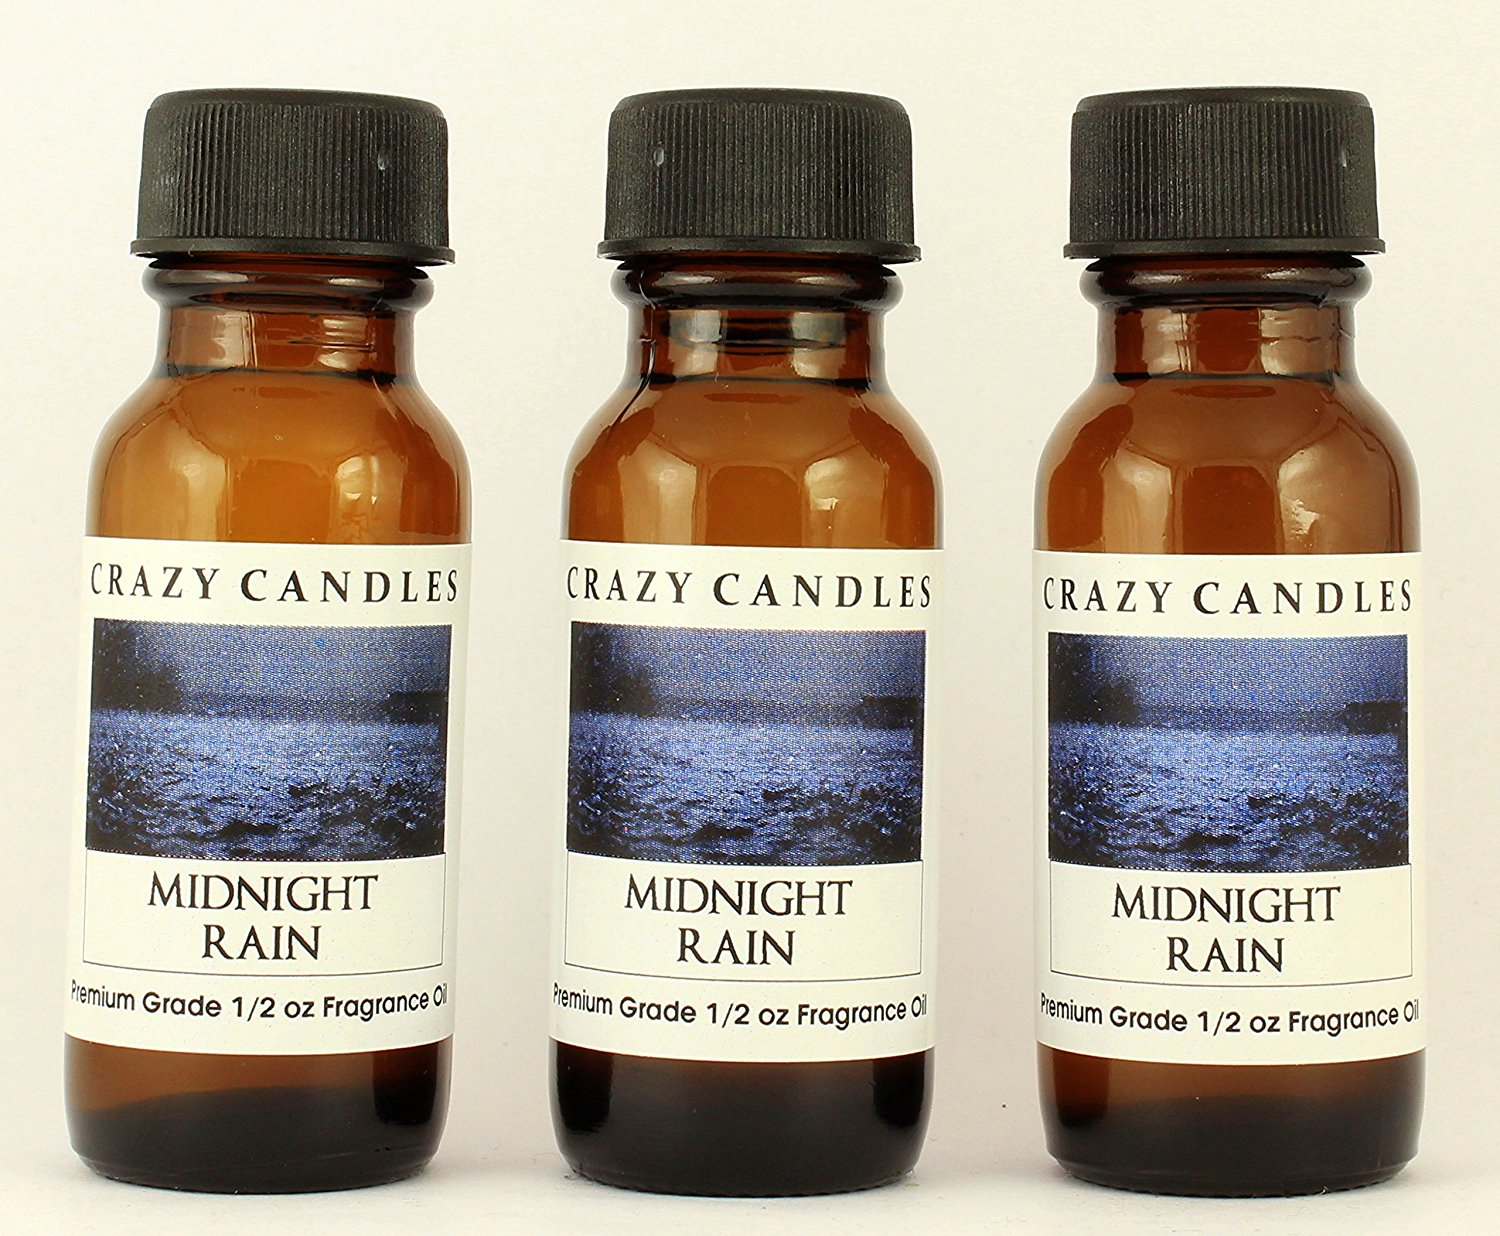 Midnight Rain 3 Bottles 1/2 Fl Oz Each (15ml) Premium Grade Scented Fragrance Oil By Crazy Candles (Fresh Air Scented with Musk)